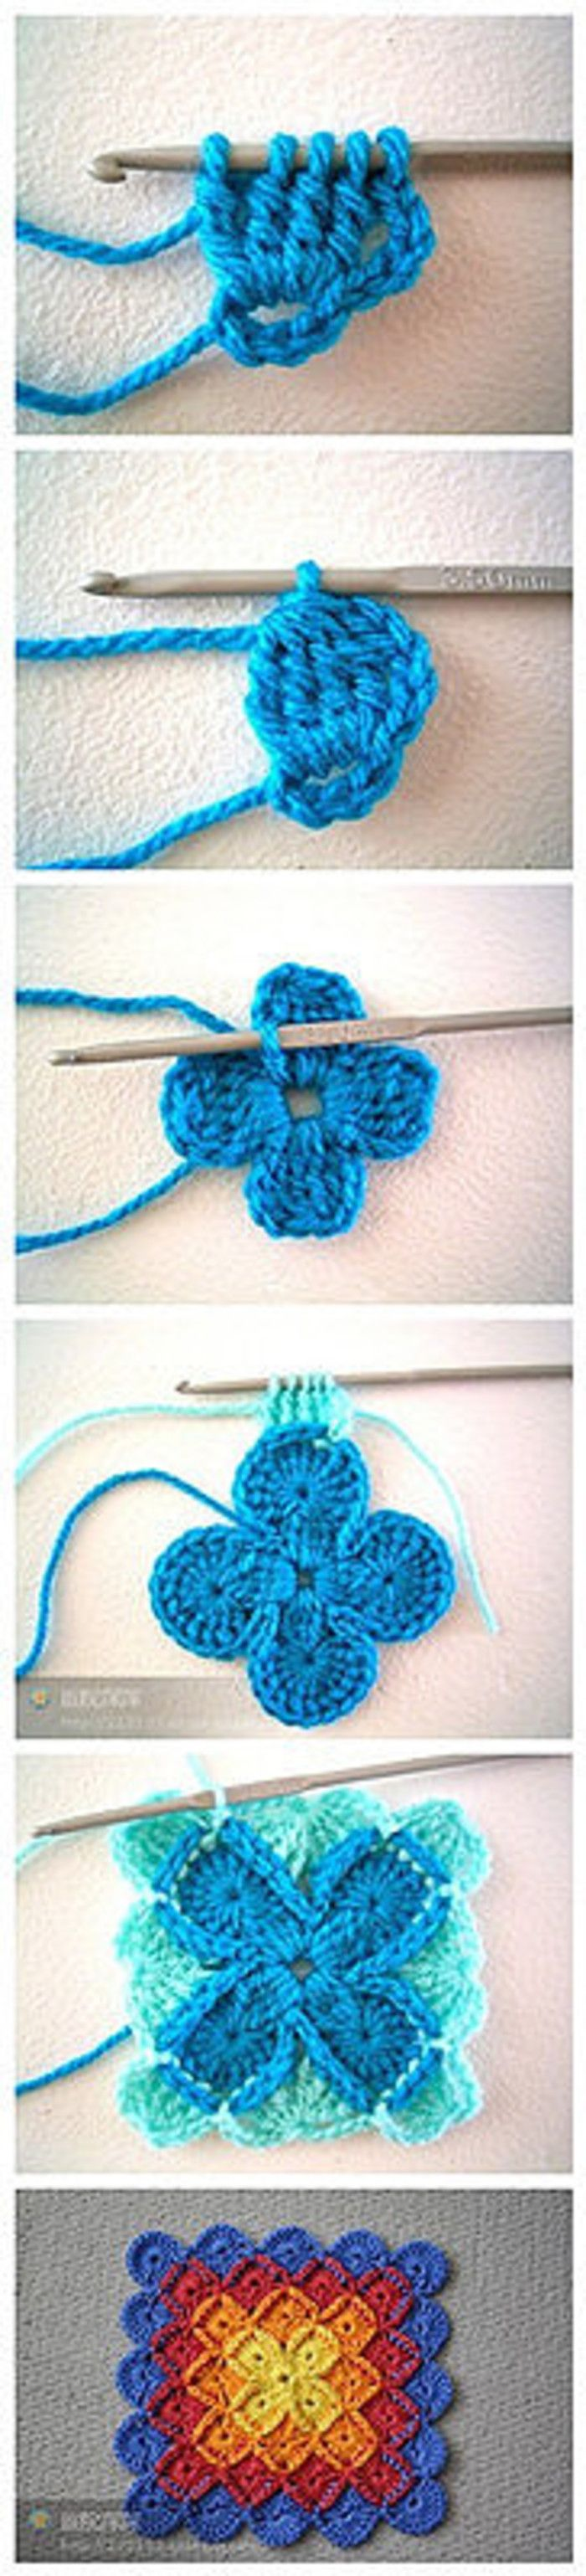 best crochet proyects images on pinterest crochet clothes